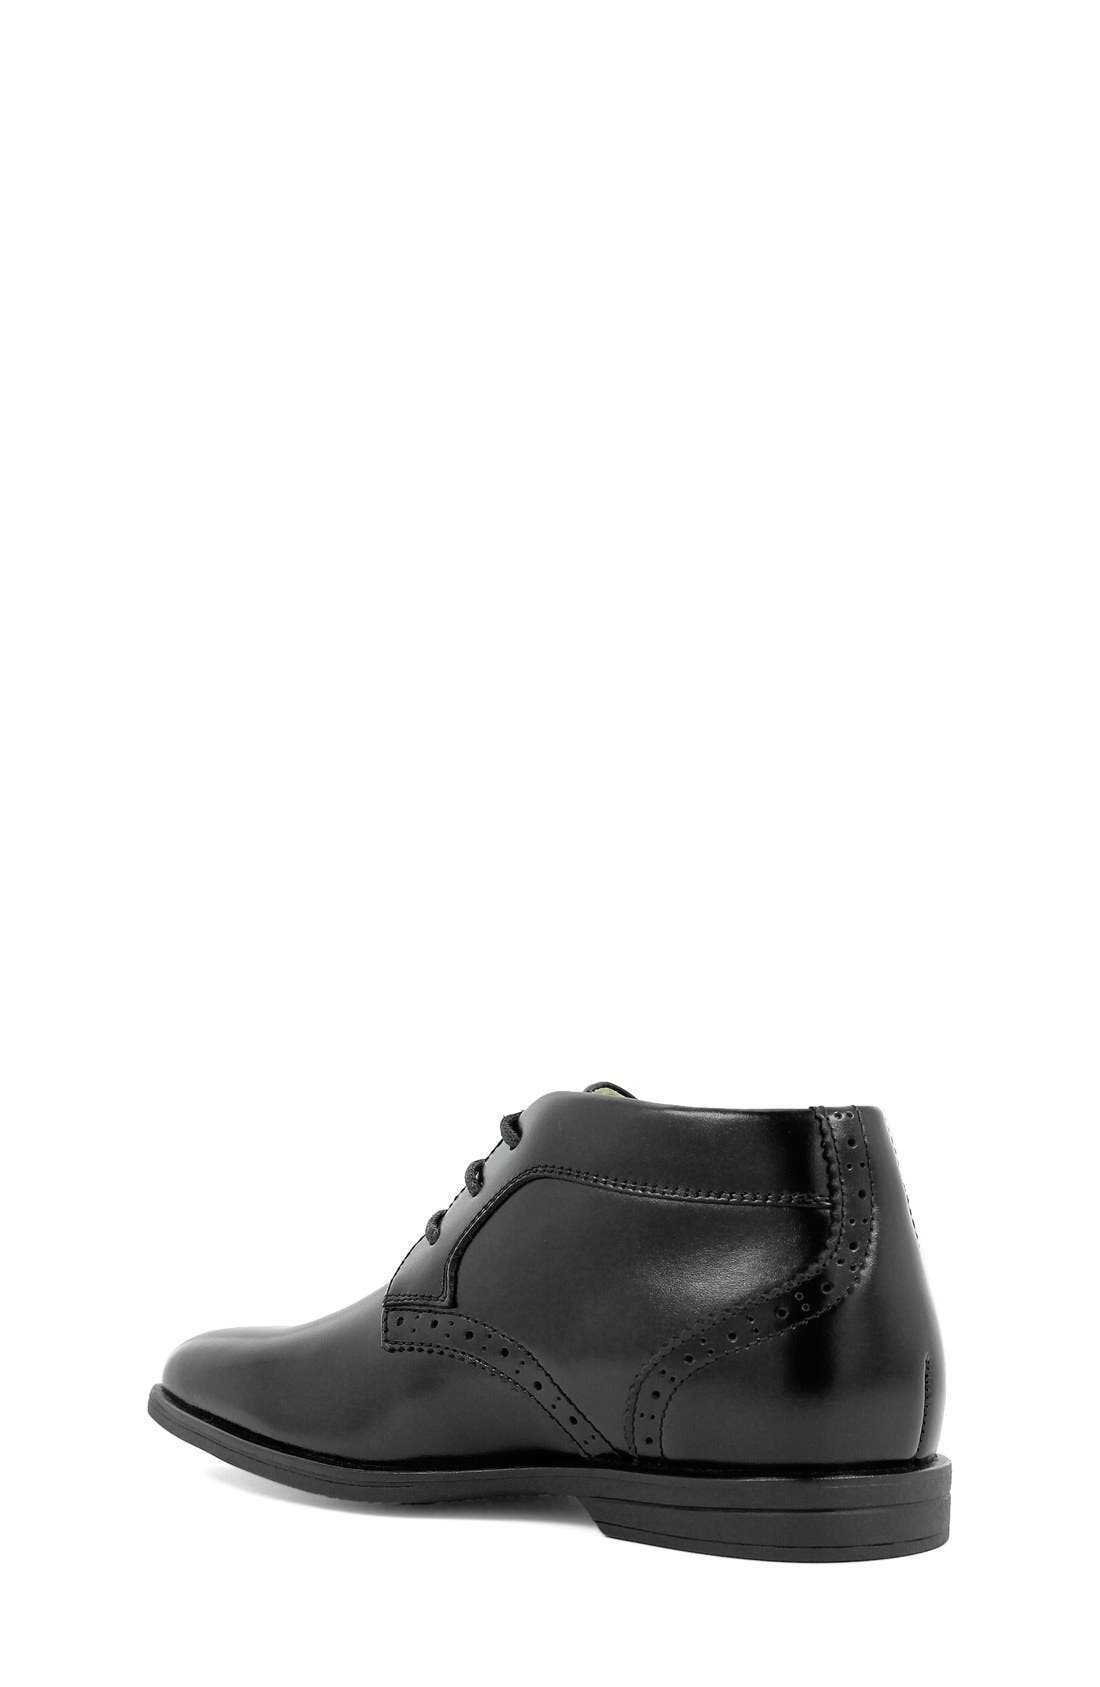 FLORSHEIM, 'Reveal' Chukka Boot, Alternate thumbnail 4, color, BLACK LEATHER